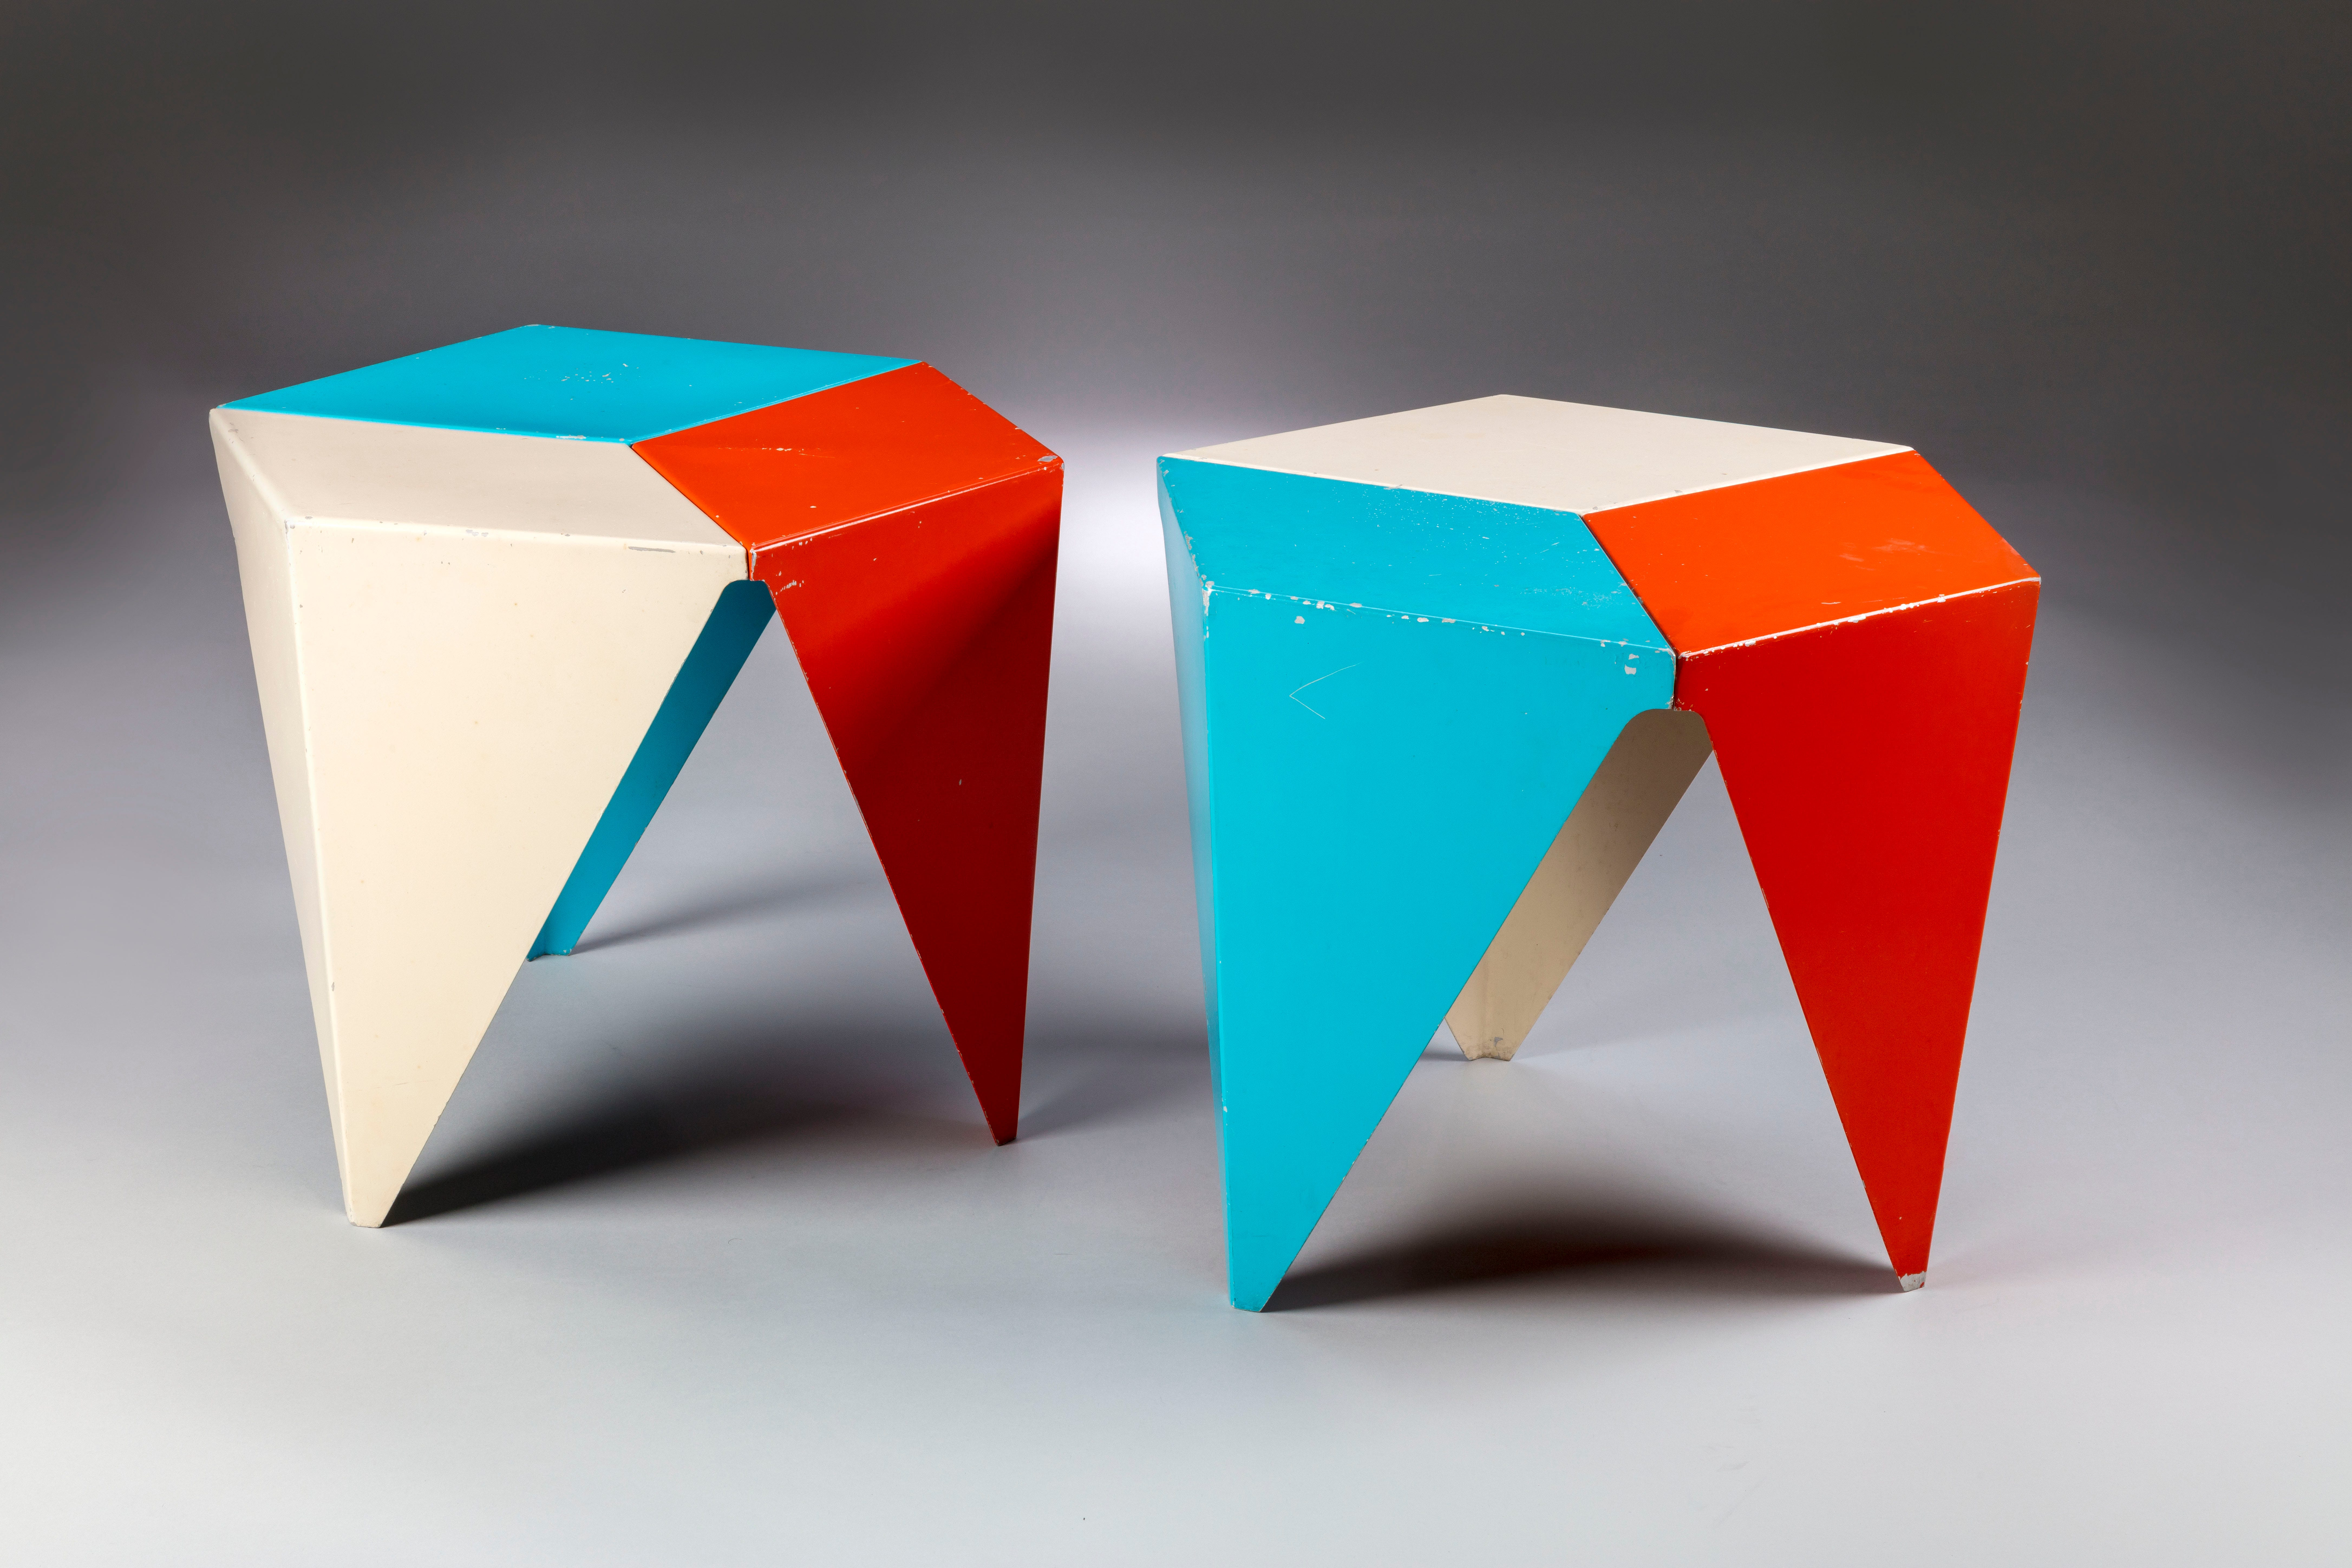 """Isamu Noguchi's """"Alcoa Forecast Program Tables"""" (1957) are part of the new exhibit, """"Serious Play,"""" at the Milwaukee Art Museum."""